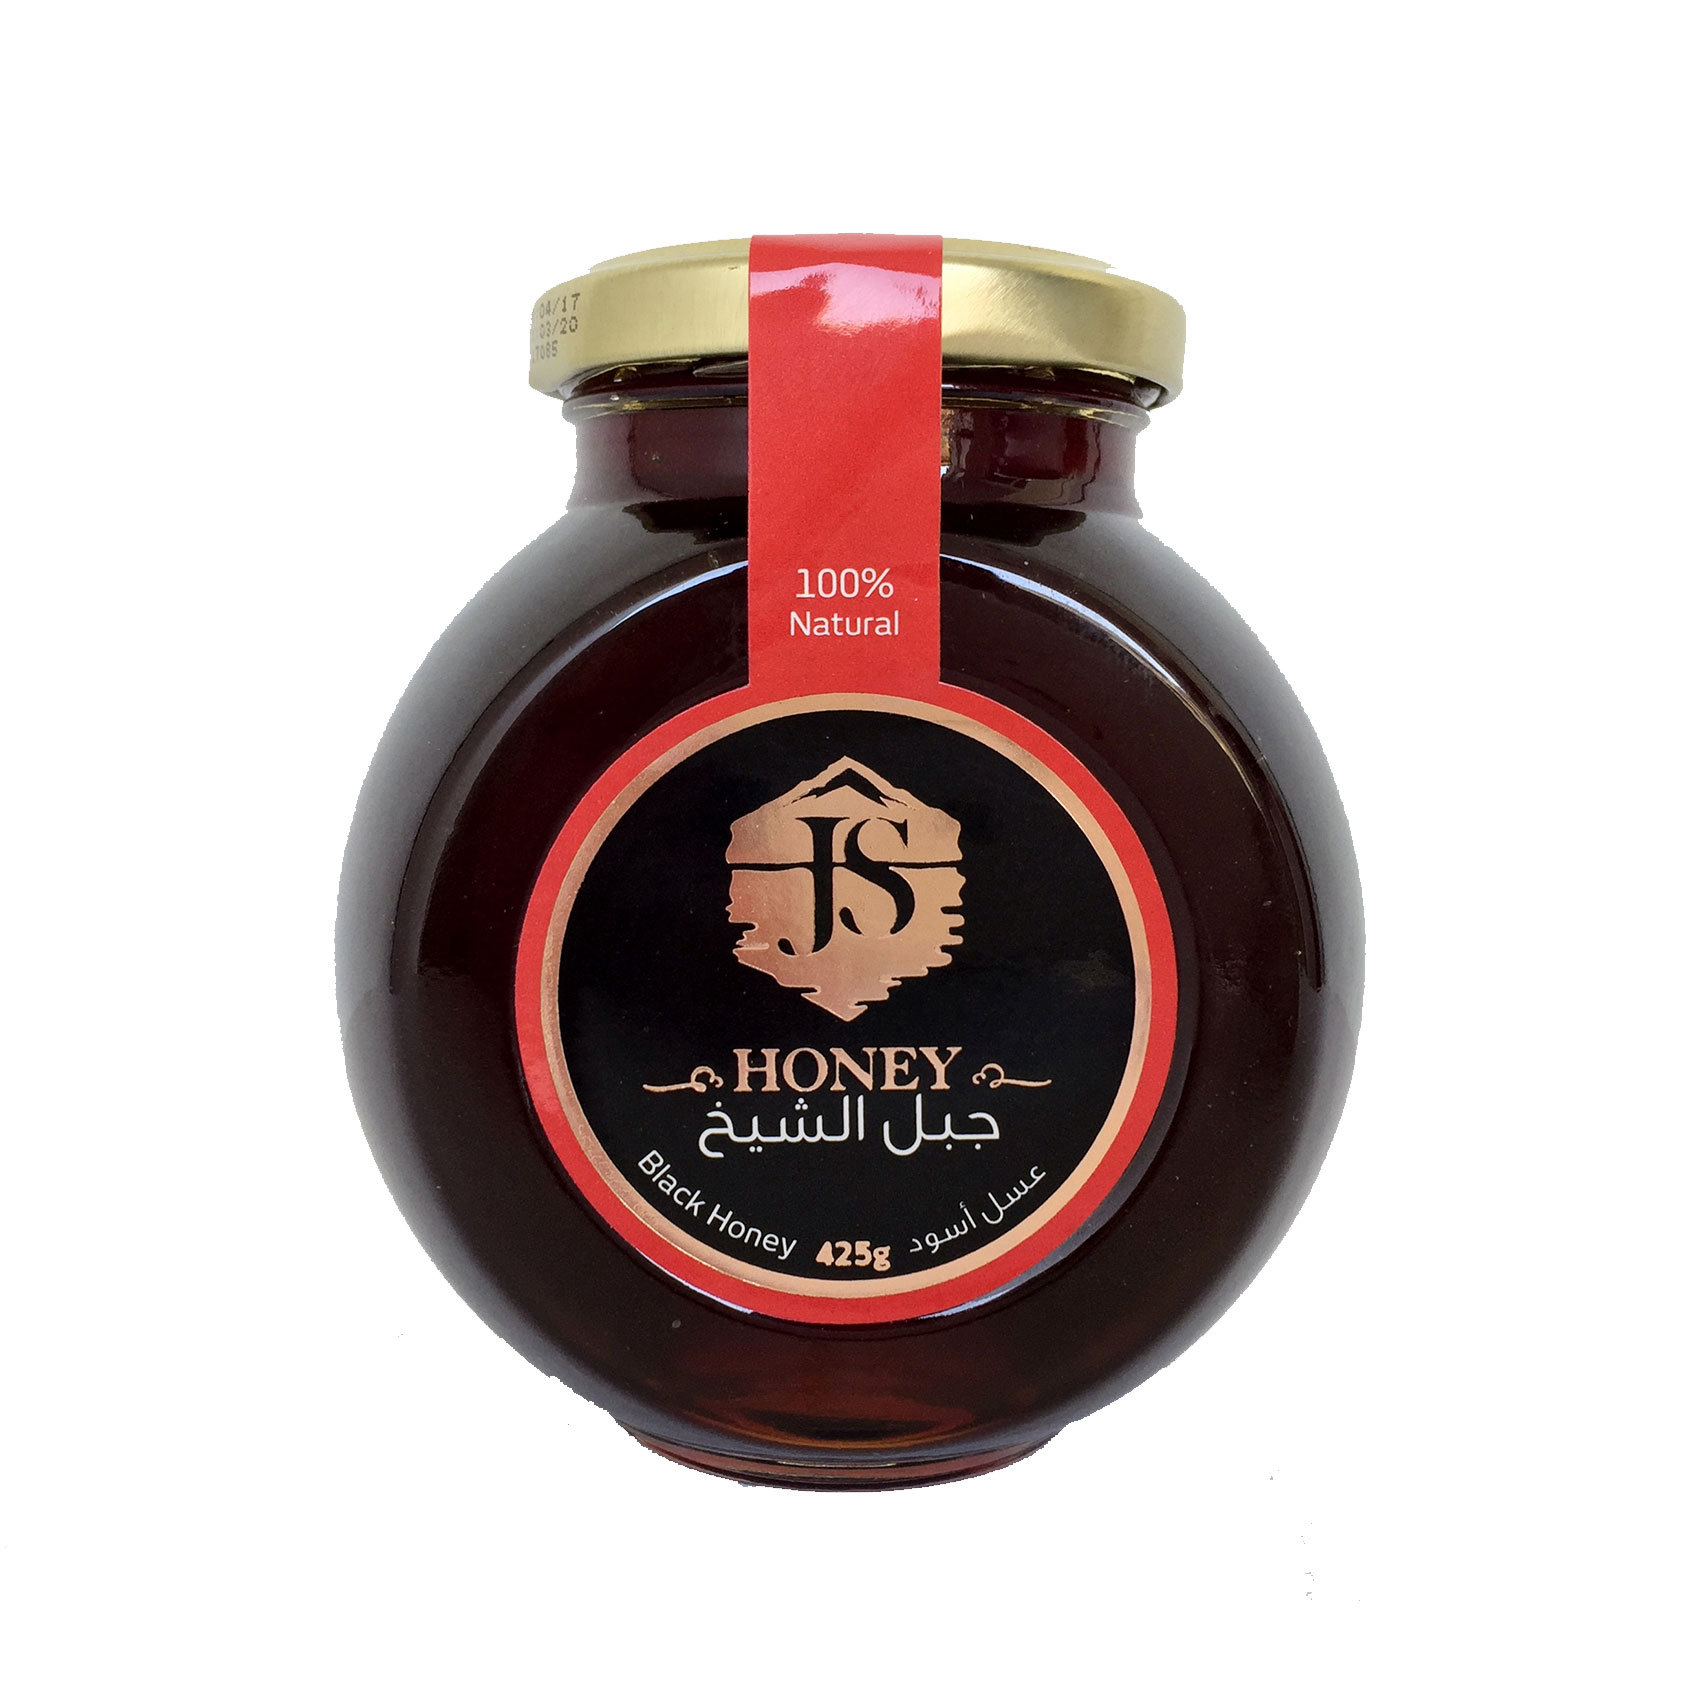 JABAL EL SHEIKH OCTOBER HONEY 425G